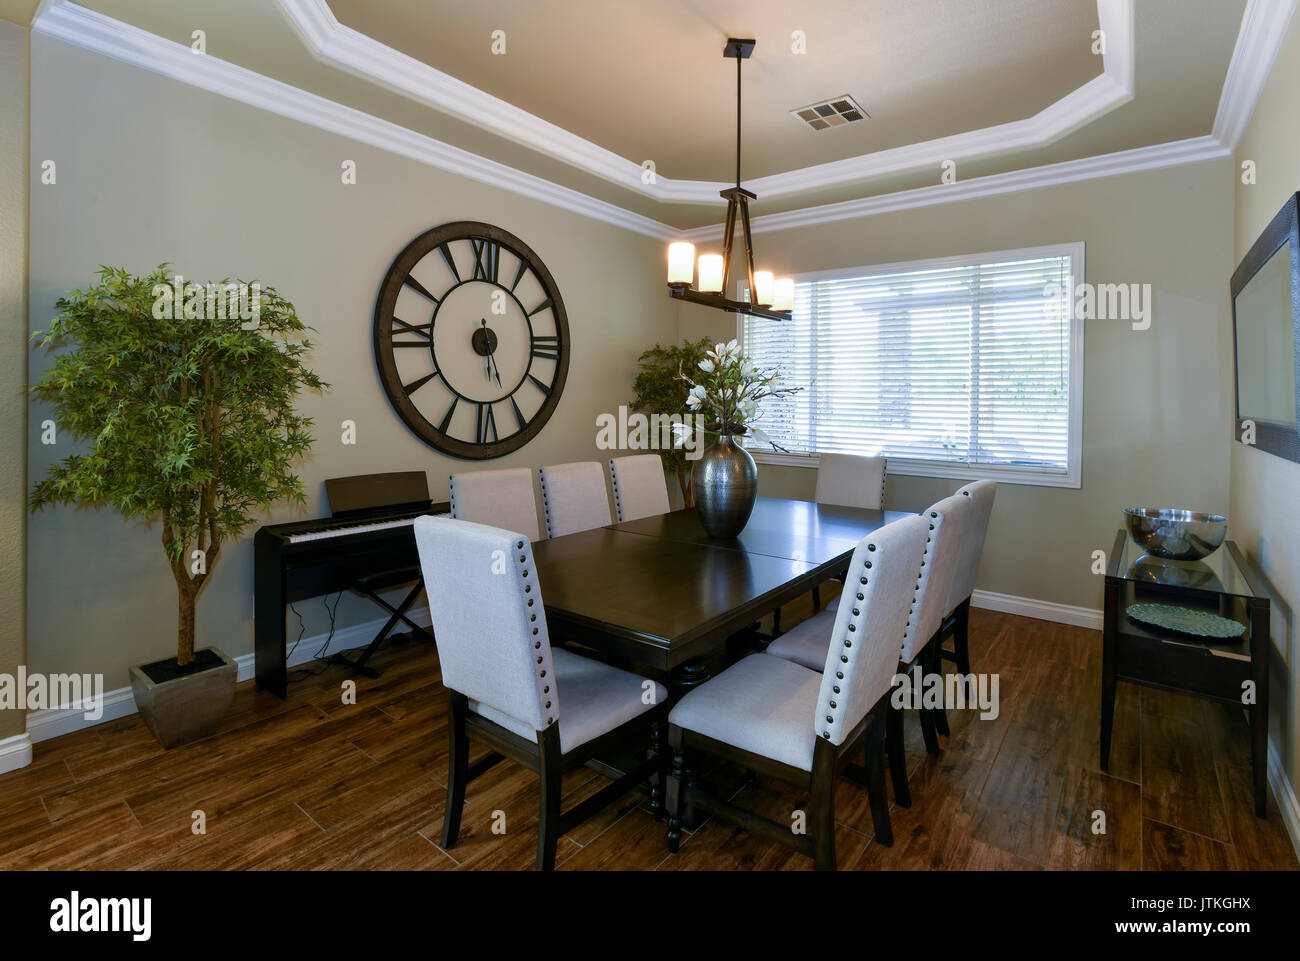 Contemporary resintial dining room, home interior. - Stock Image